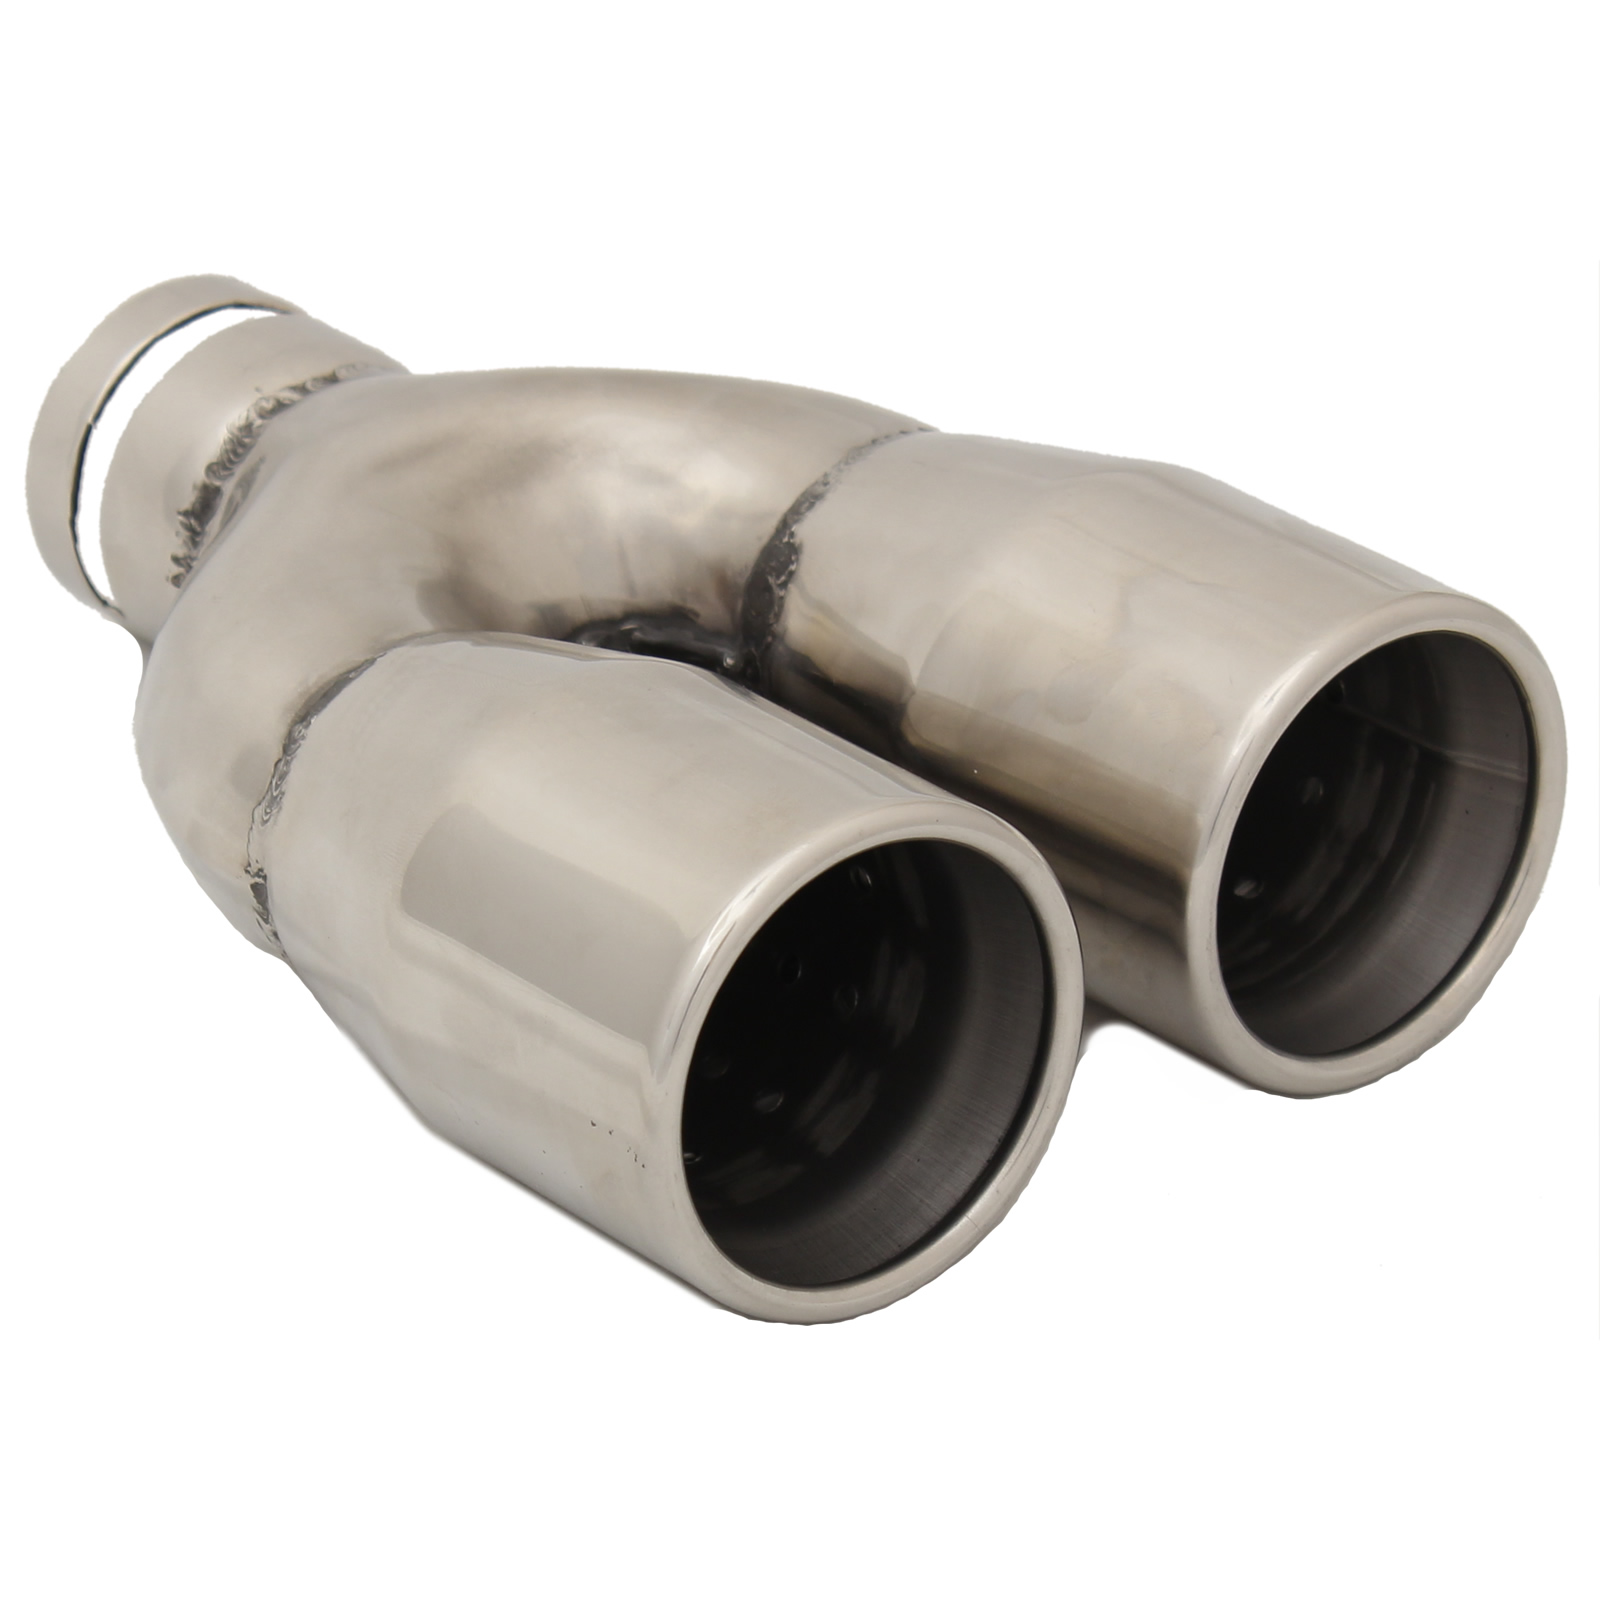 STAINLESS STEEL TWIN 3 INCH ROUND CHROME CAR EXHAUST TAIL